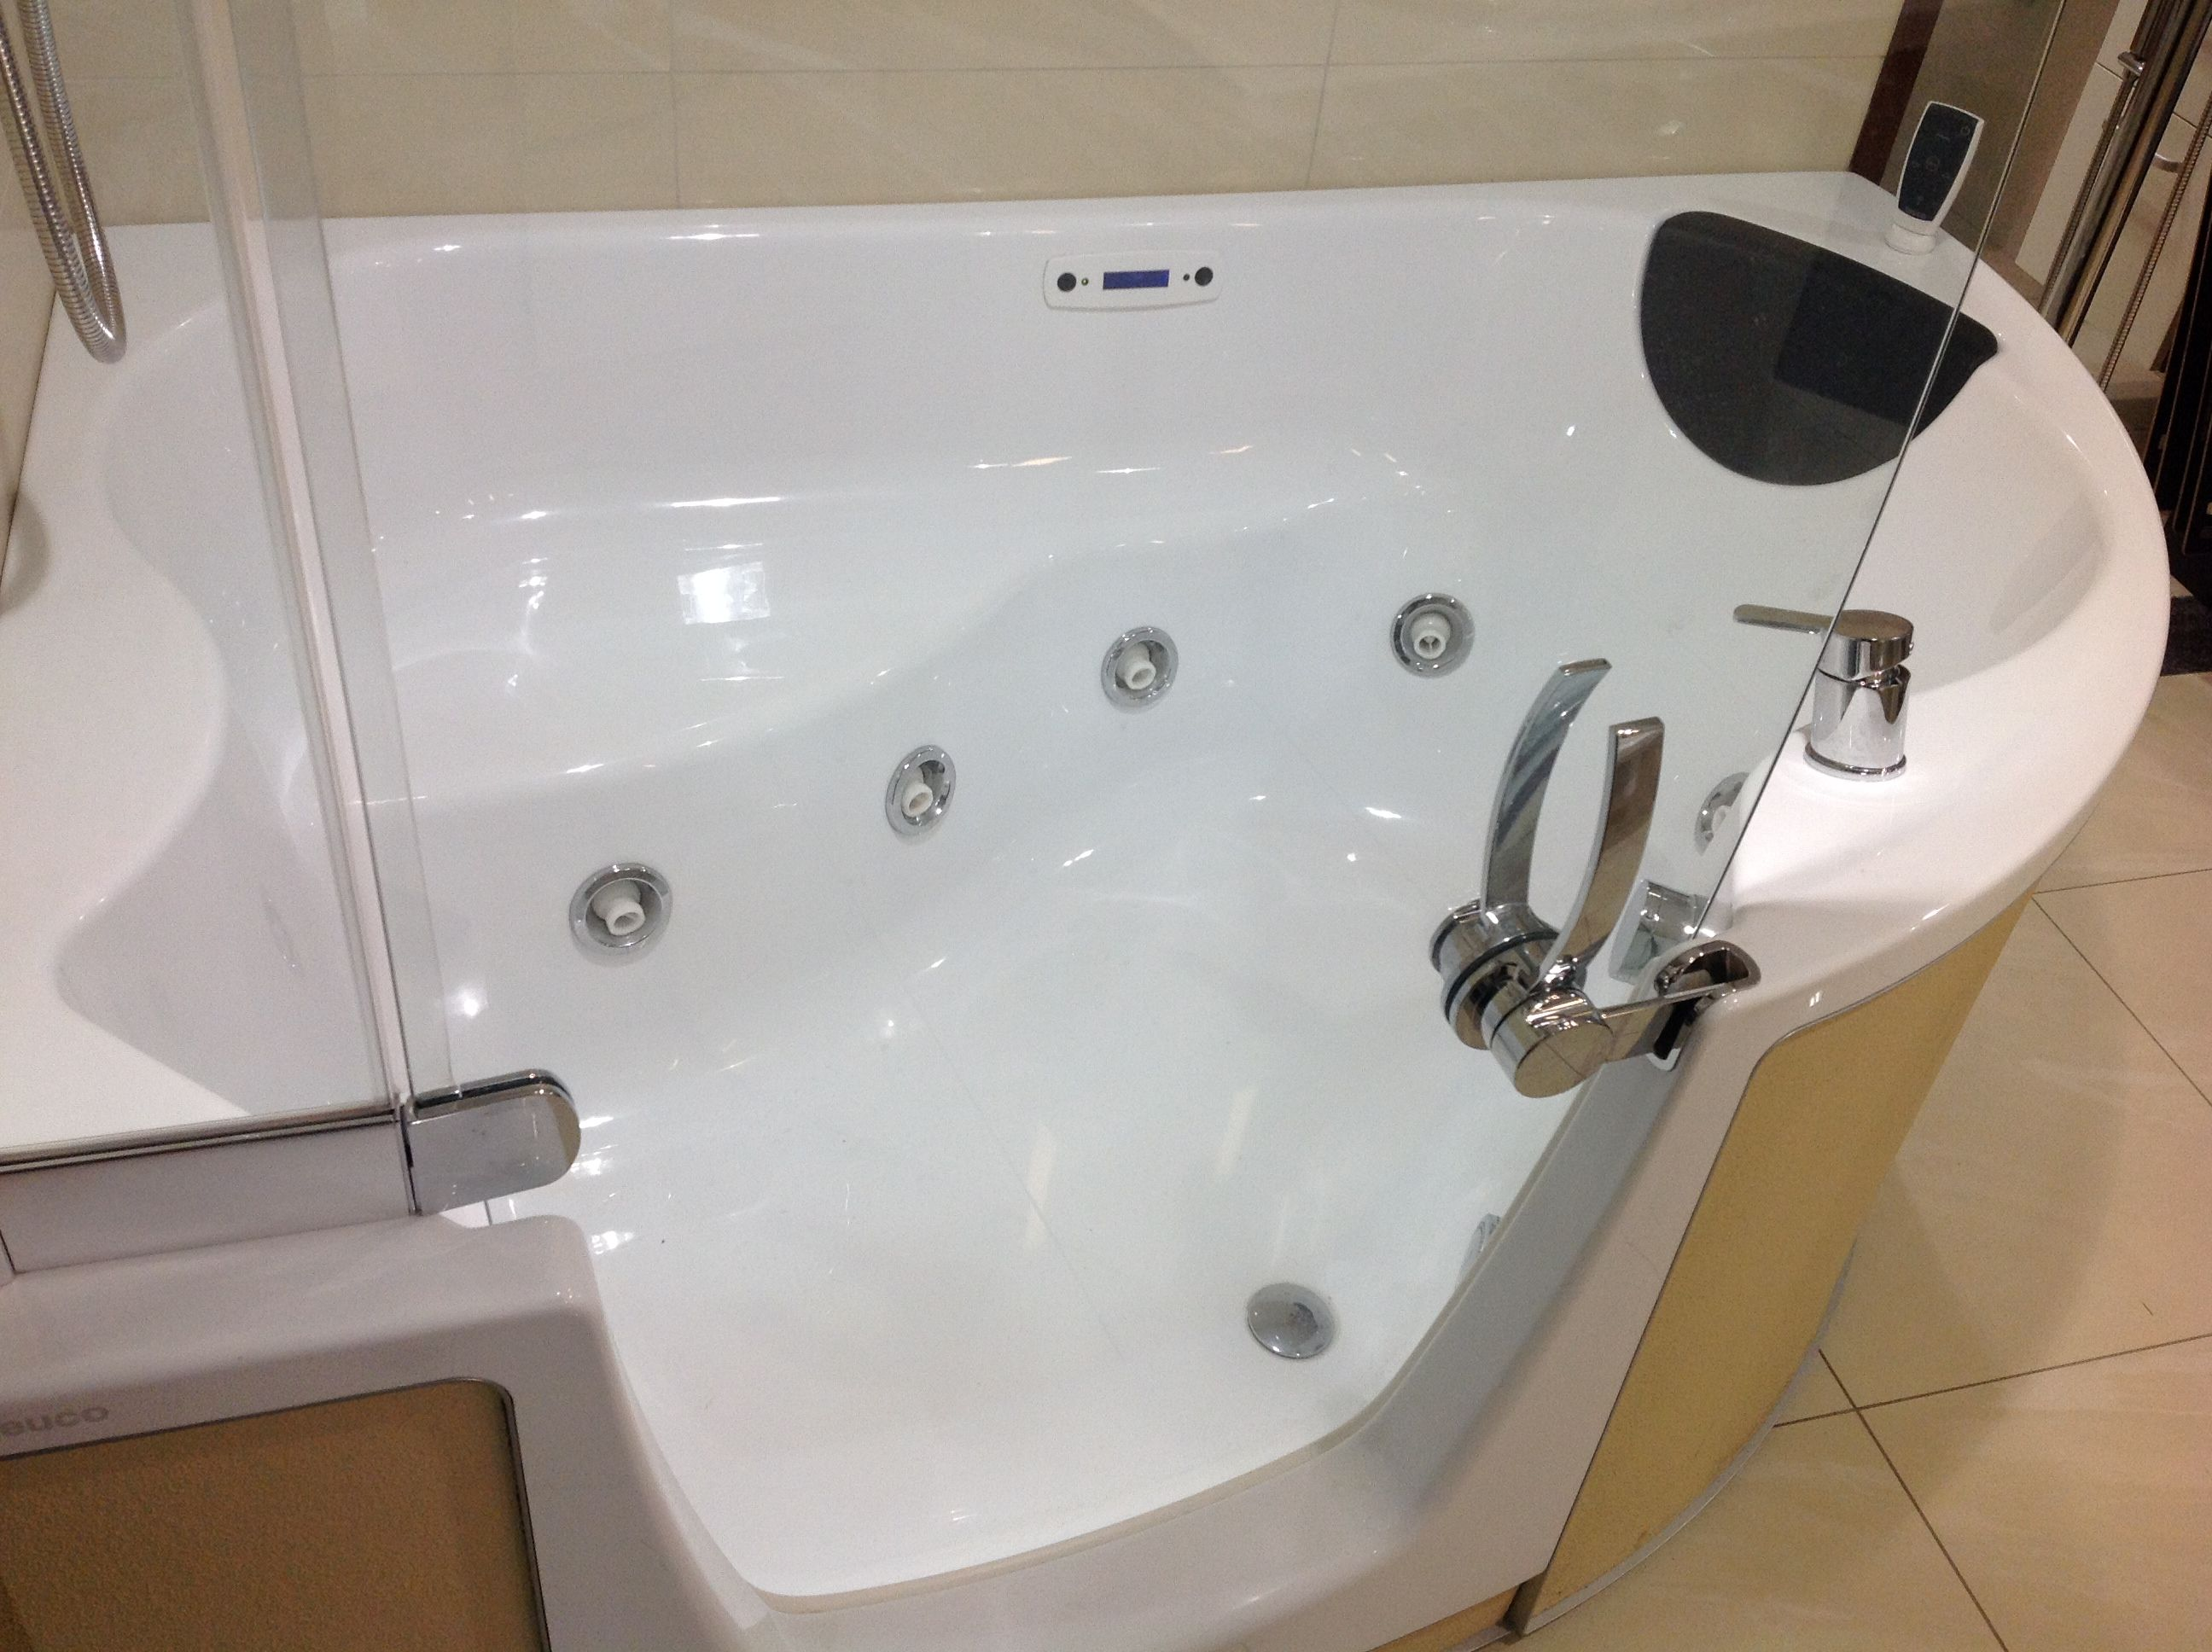 Ex Display Teuco 383 Standard Corner Combo Unit With Hydrosilence Convertable Front Panel Teuco Bath Waste Overflow Fille Bathroom Suites Display Showroom